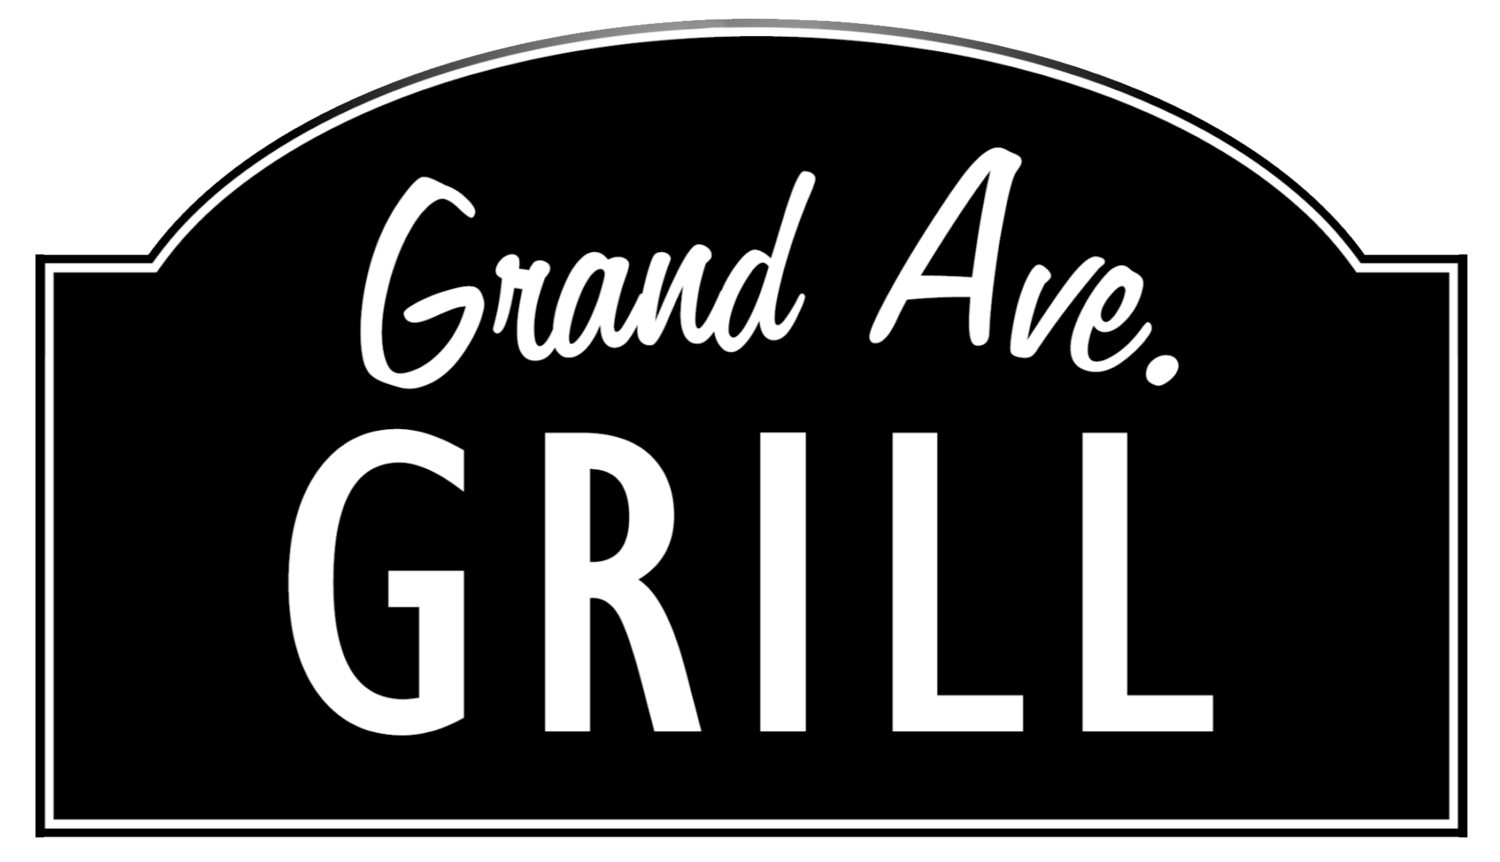 GRAND AVE. GRILL